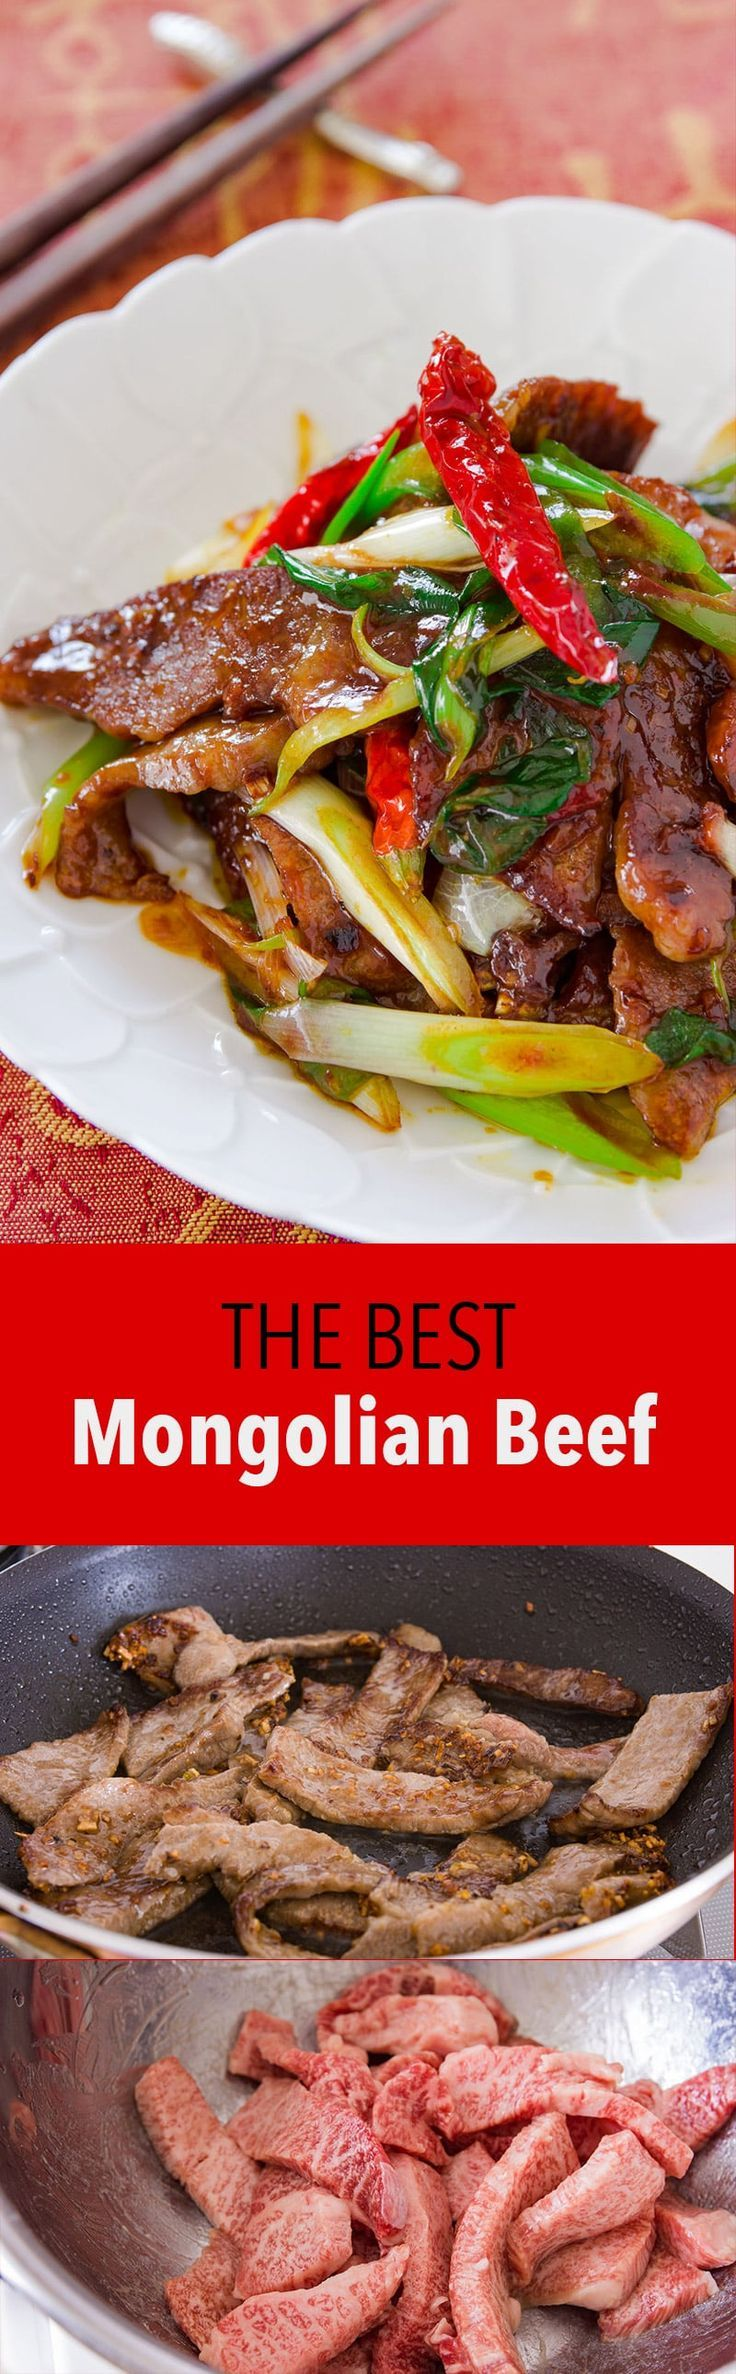 While Not A Mongolian Dish Mongolian Beef Is A Delicious Chinese American Class Pepinos Recipes Beef Recipes Recipes Asian Recipes